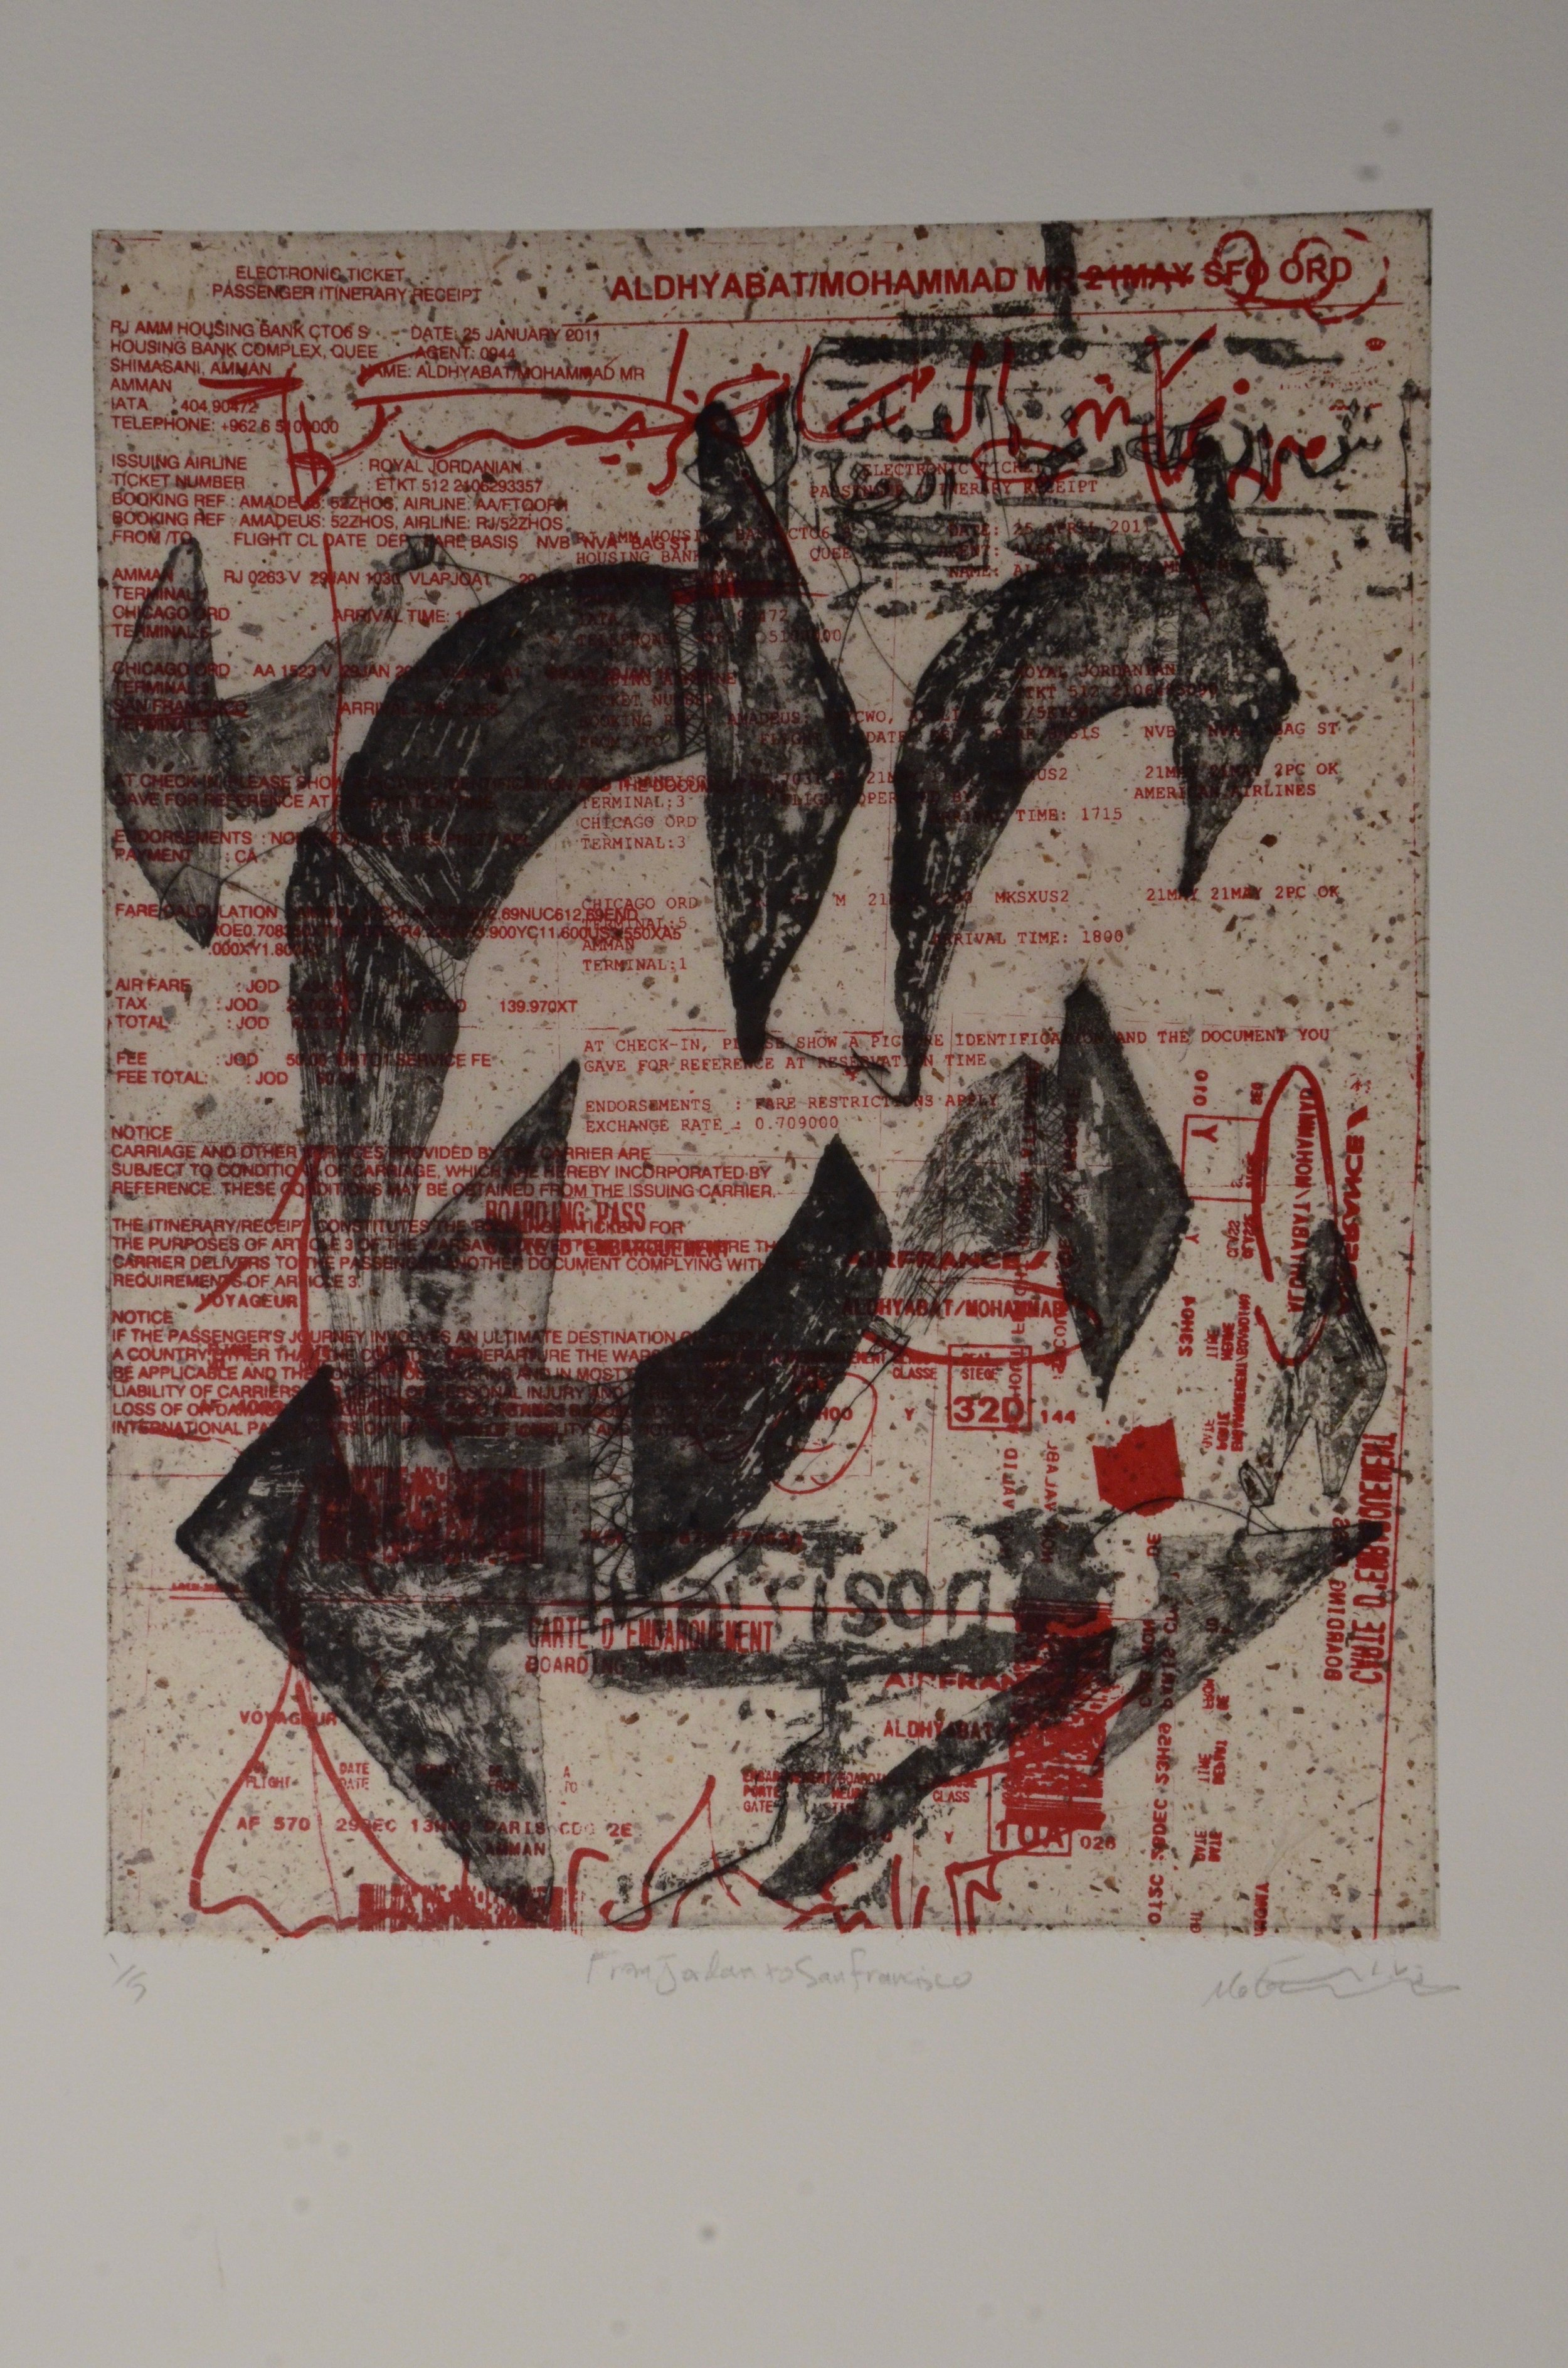 Mohammed Drybhat  Etching with Screenprinting  Graduate Etching